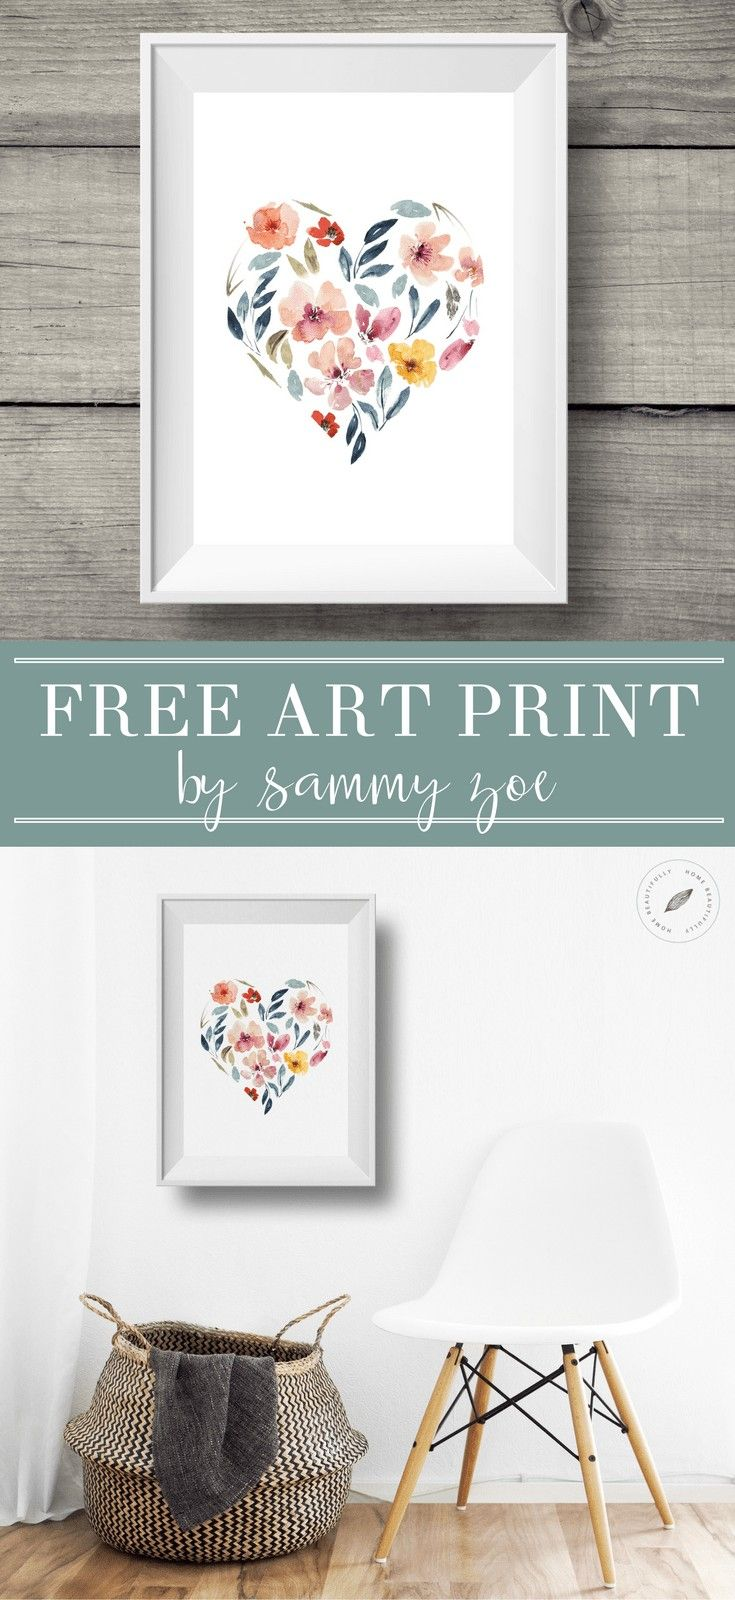 Download this gorgeous free watercolor print from sammy zoe